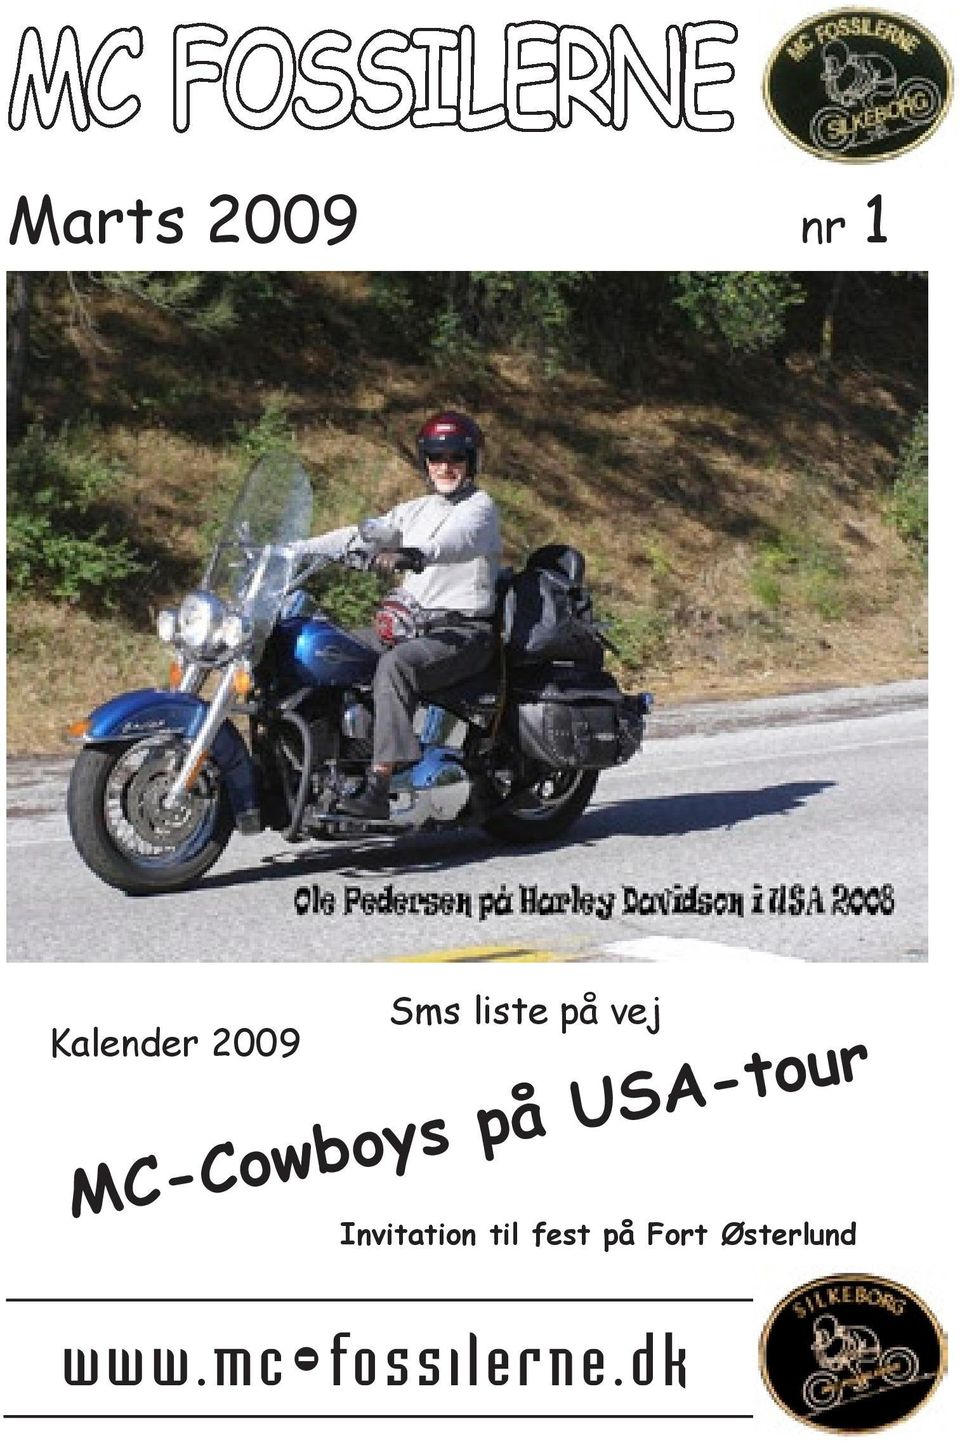 USA-tour Invitation til fest på